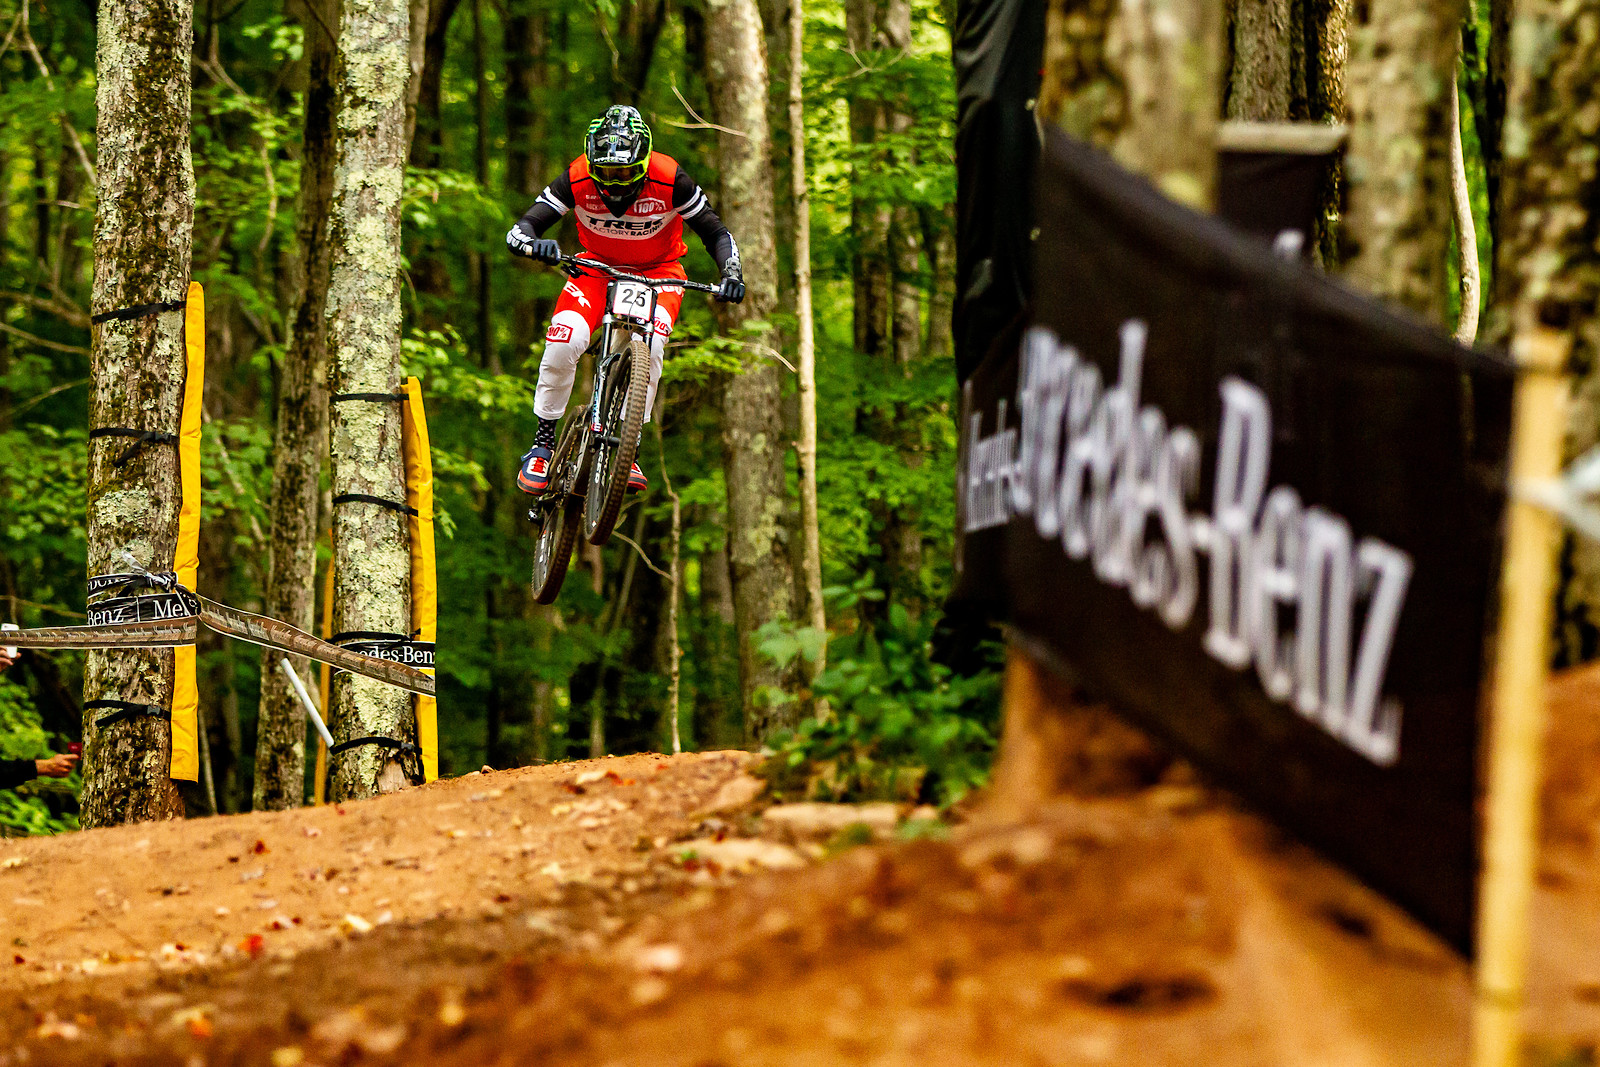 #USDH Racers at the Snowshoe World Cup DH - Charlie Harrison - JackRice - Mountain Biking Pictures - Vital MTB